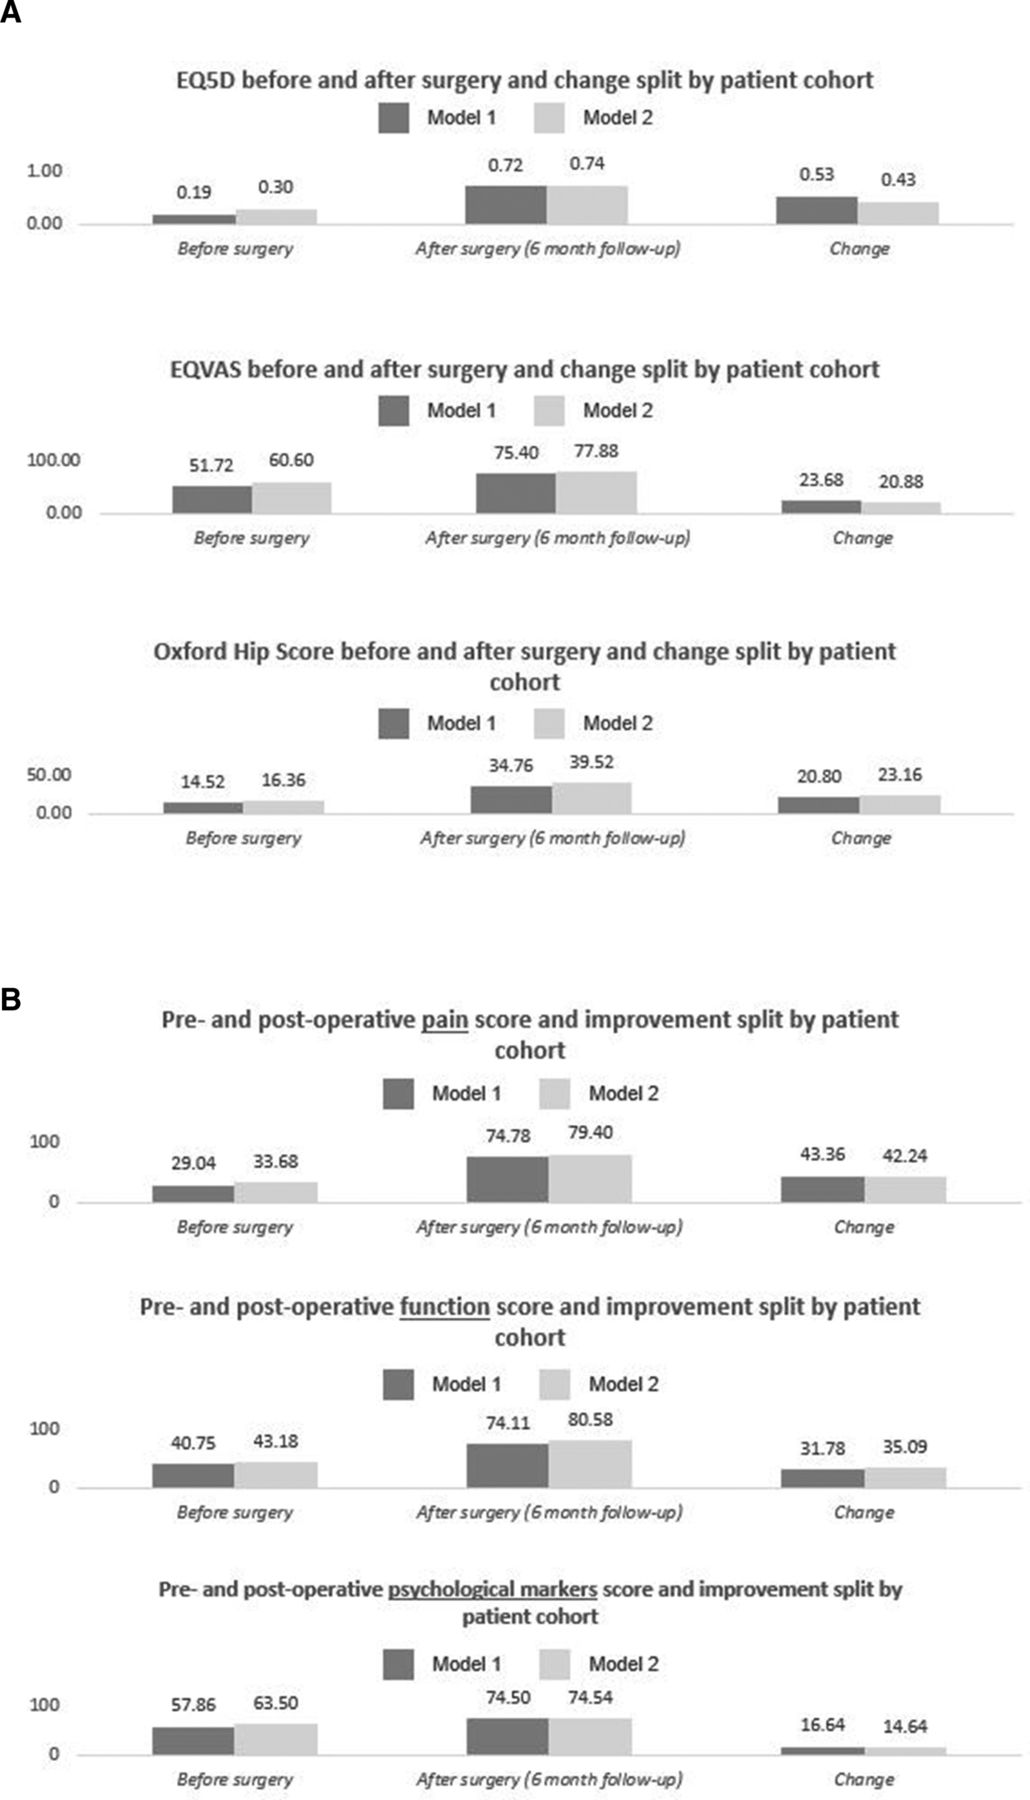 Value-based healthcare analysis of joint replacement surgery